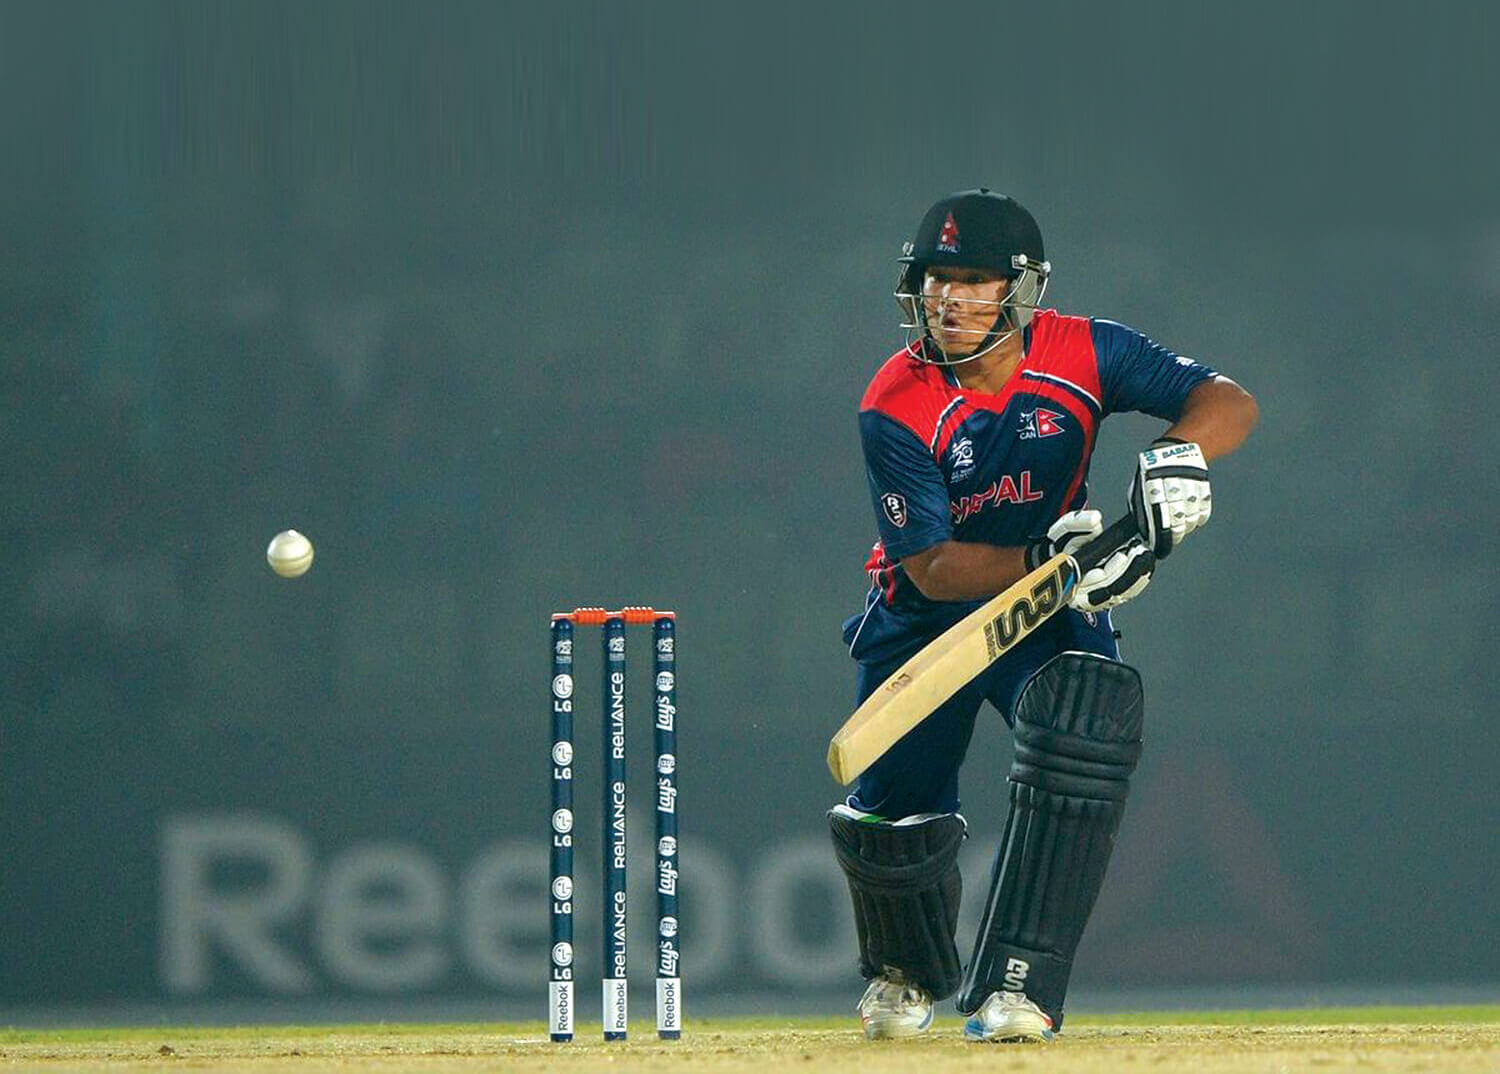 Nepali cricket comes of age